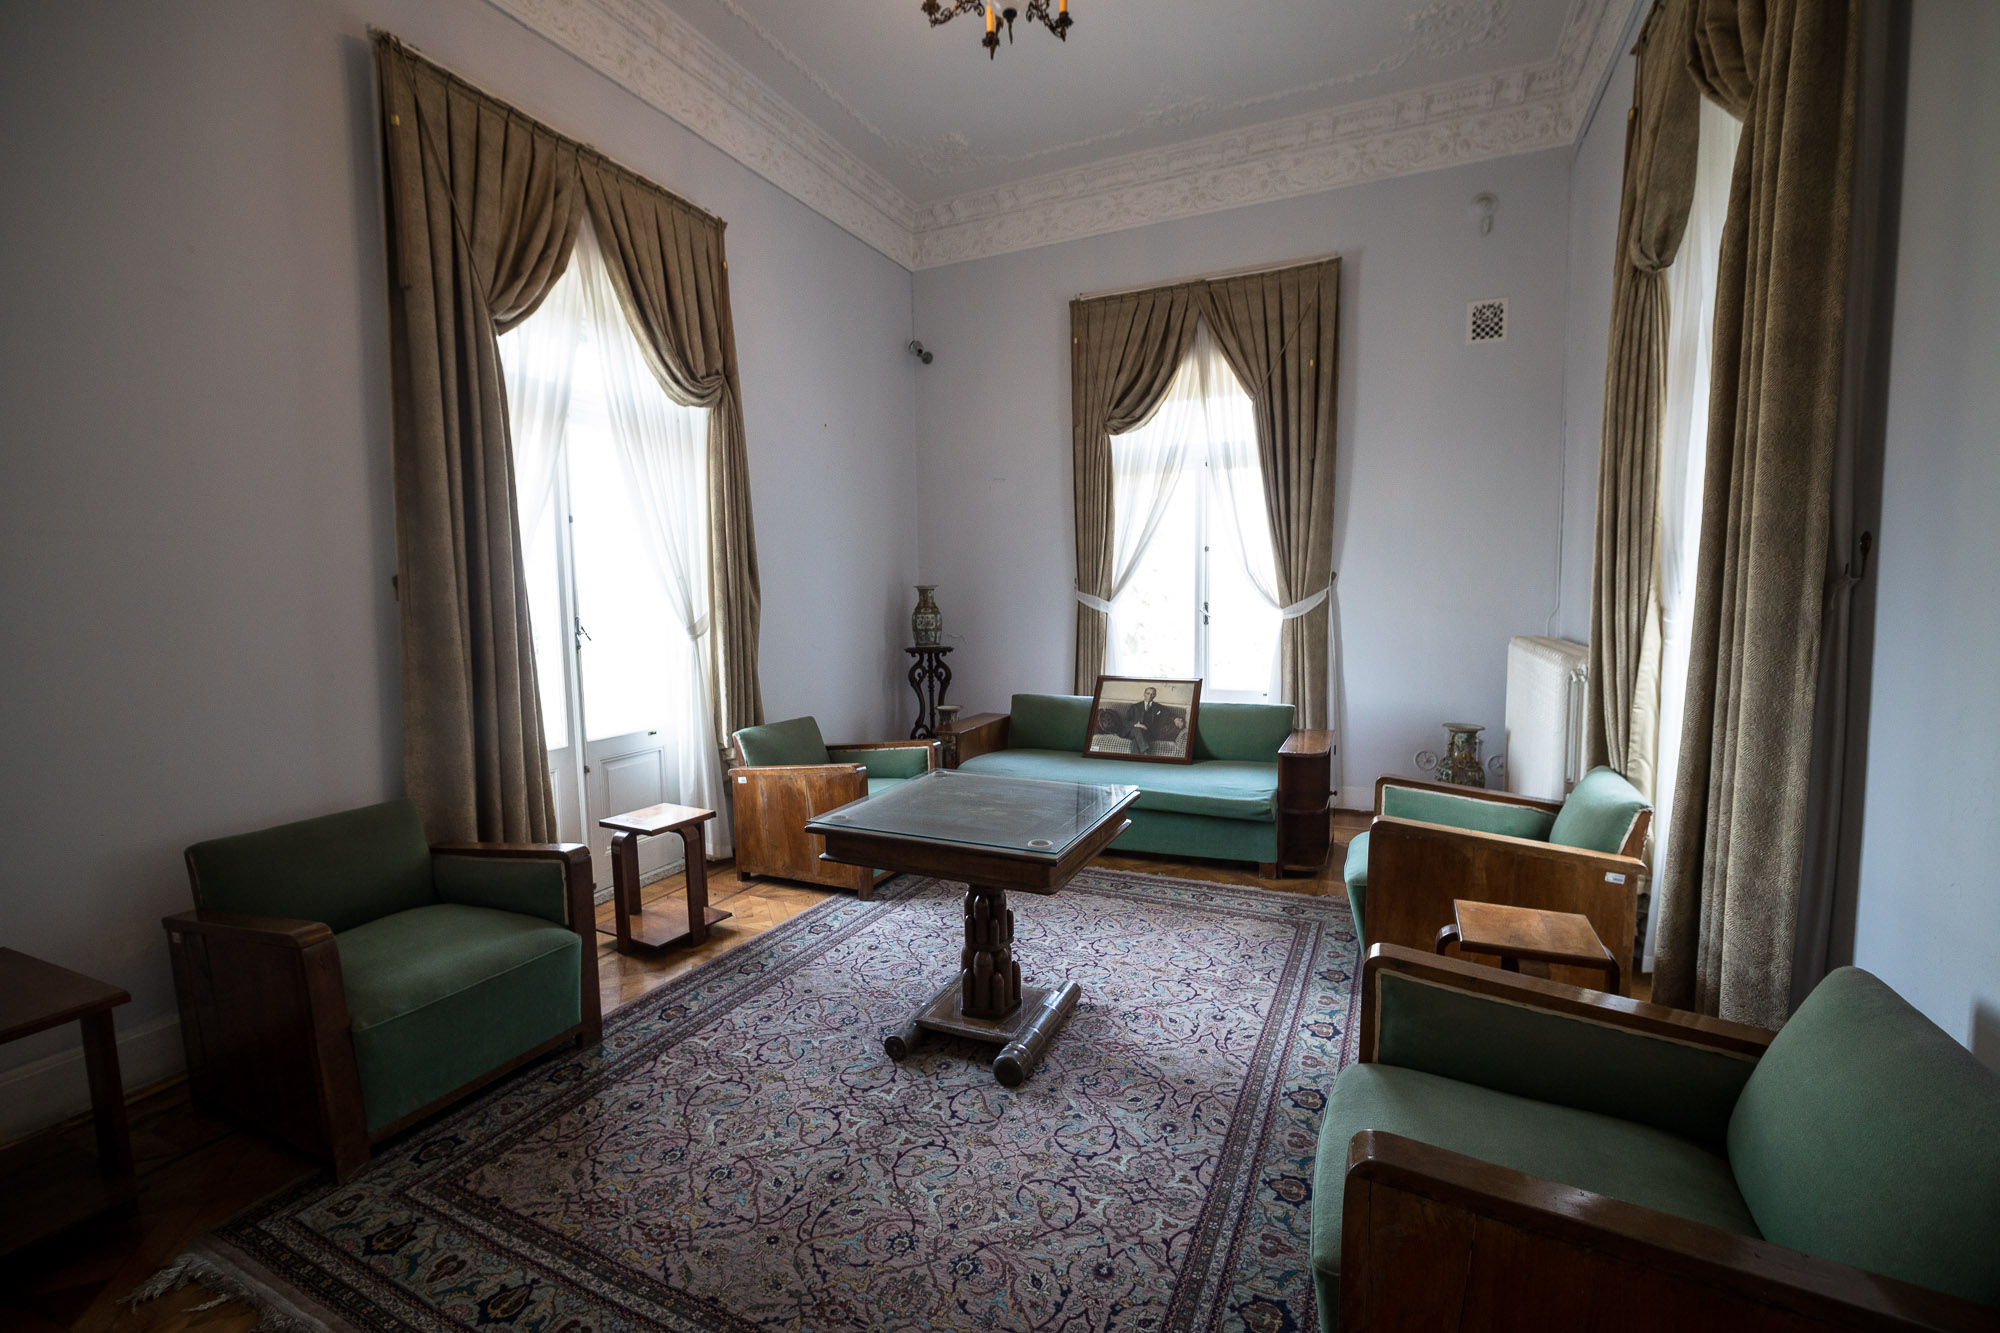 Atatürk's living room